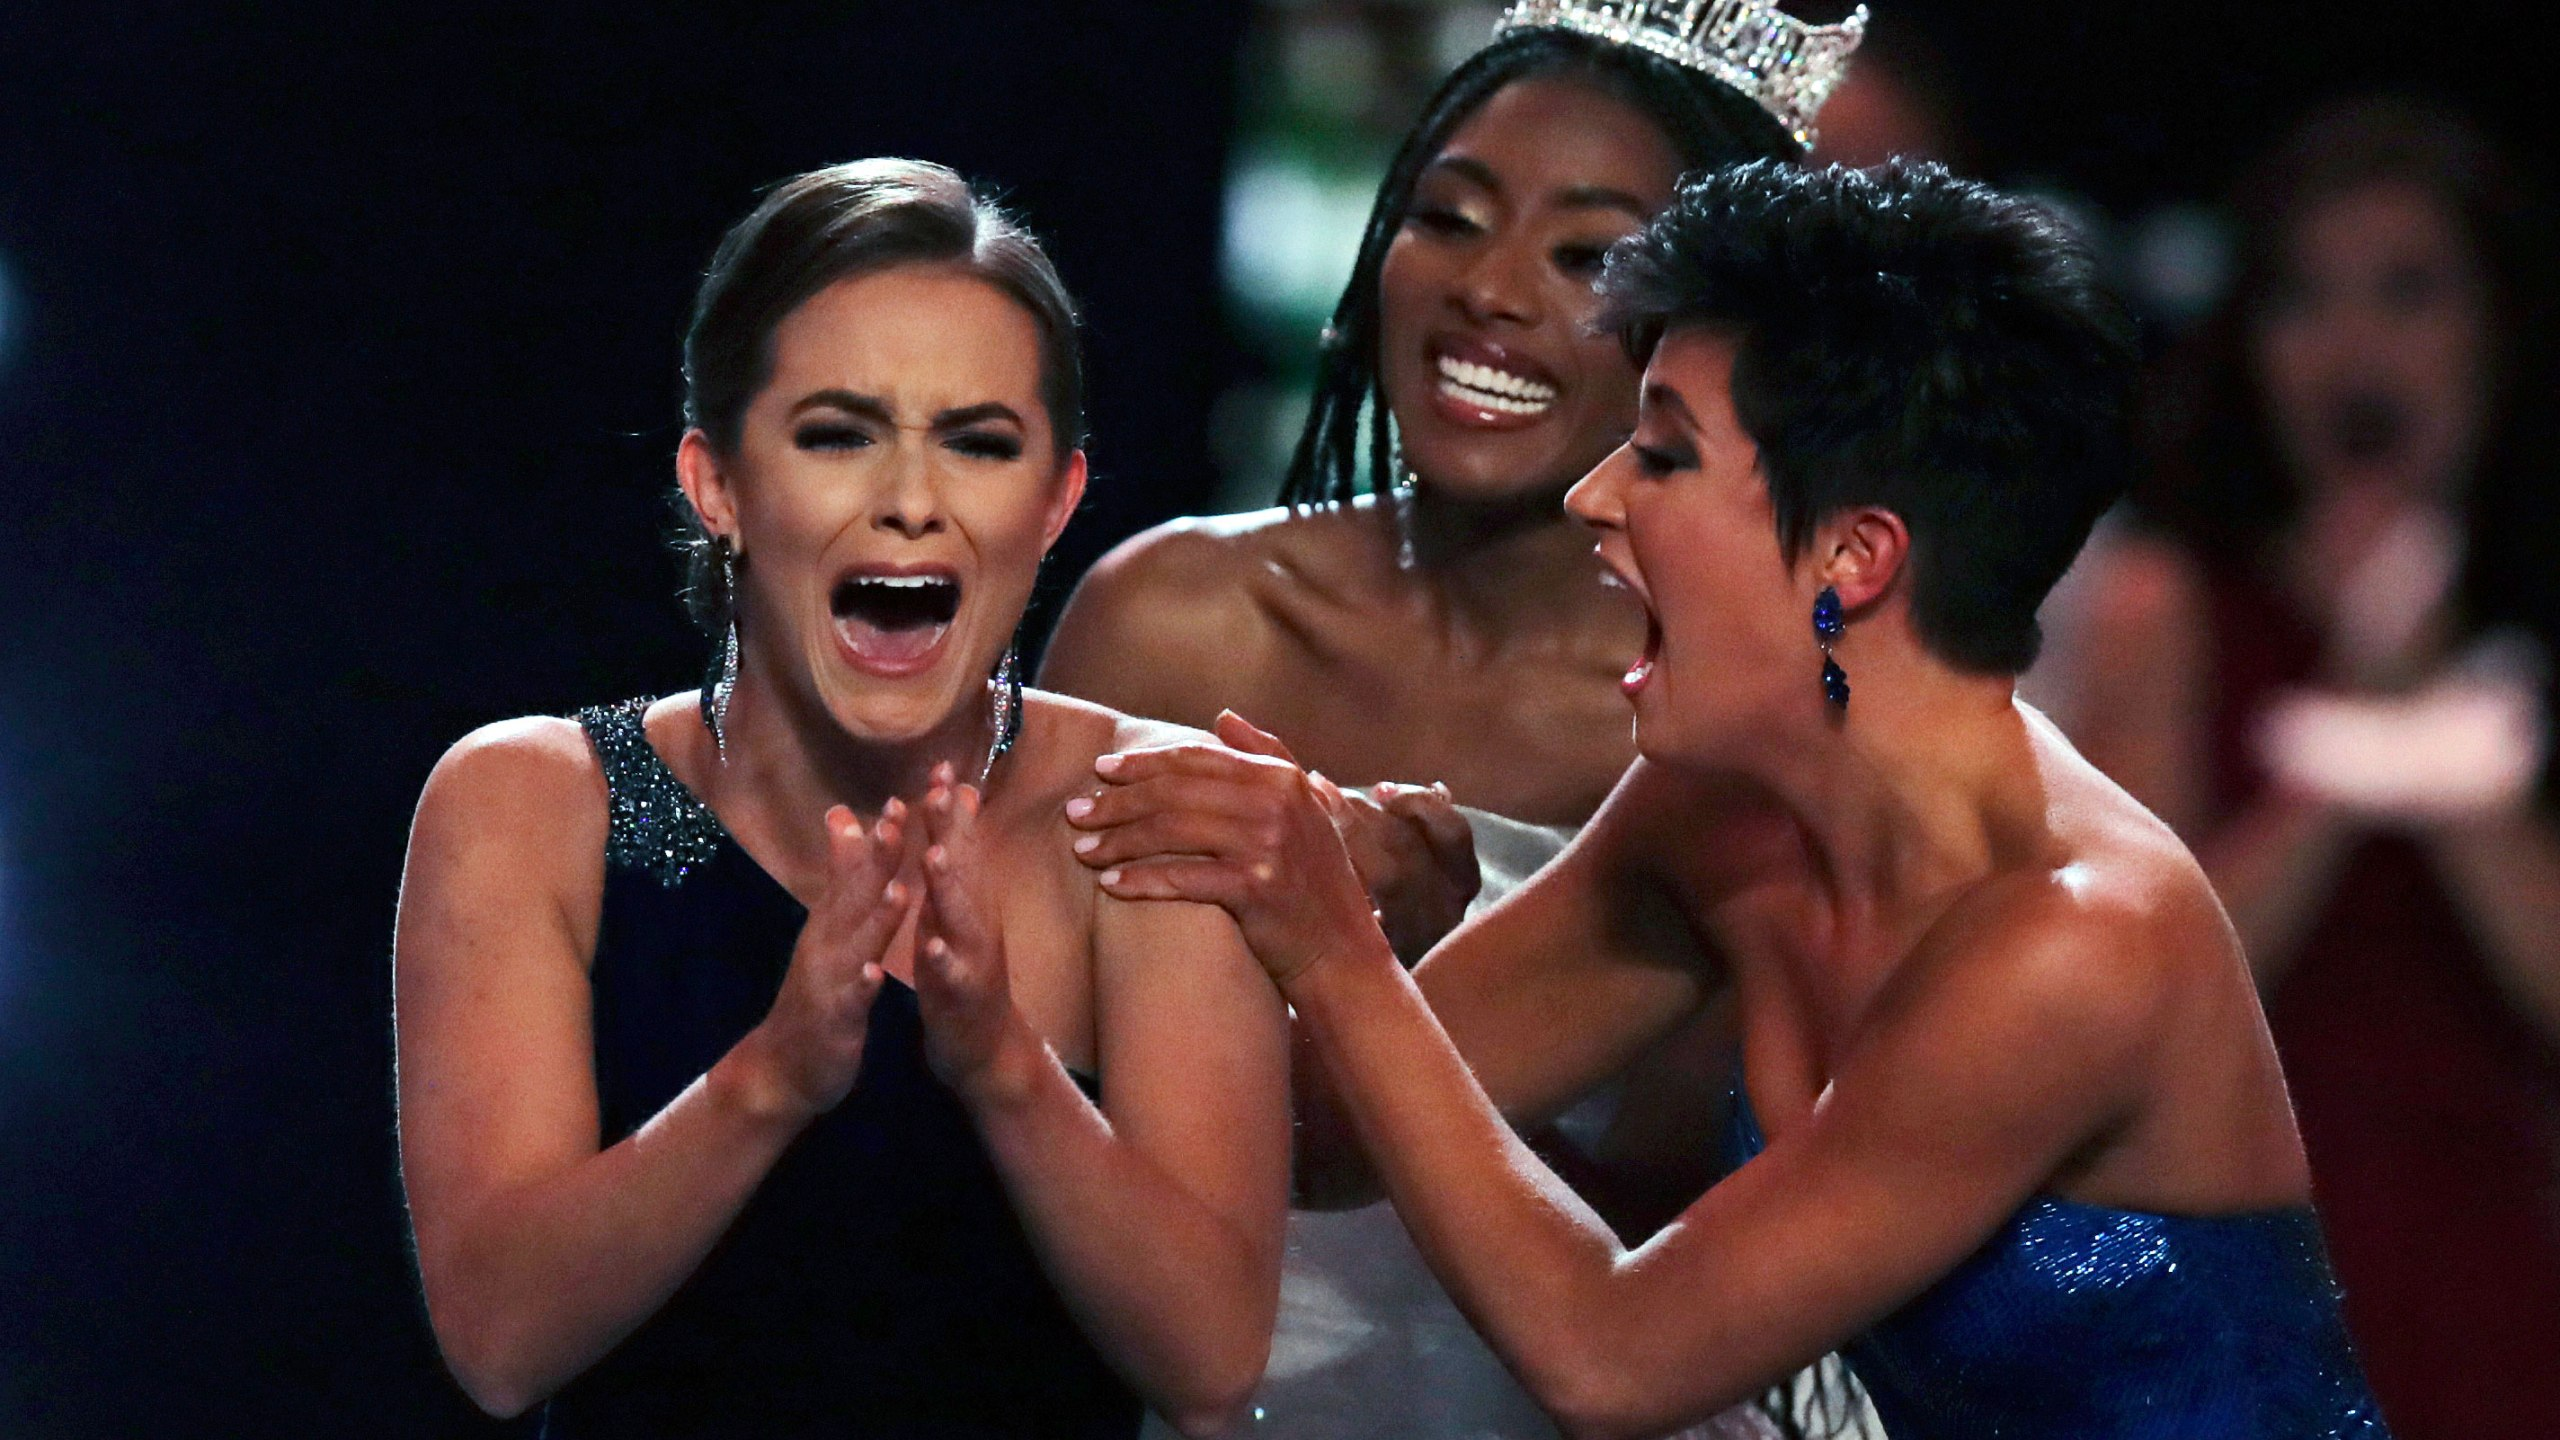 Camille Schrier, of Virginia, left, reacts after winning the Miss America competition at the Mohegan Sun casino in Uncasville, Conn., Thursday, Dec. 19, 2019. At right is runner-up Miss. Georgia Victoria Hill and and at rear is 2019 Miss. America Nia Franklin. (AP Photo/Charles Krupa, via CNN)